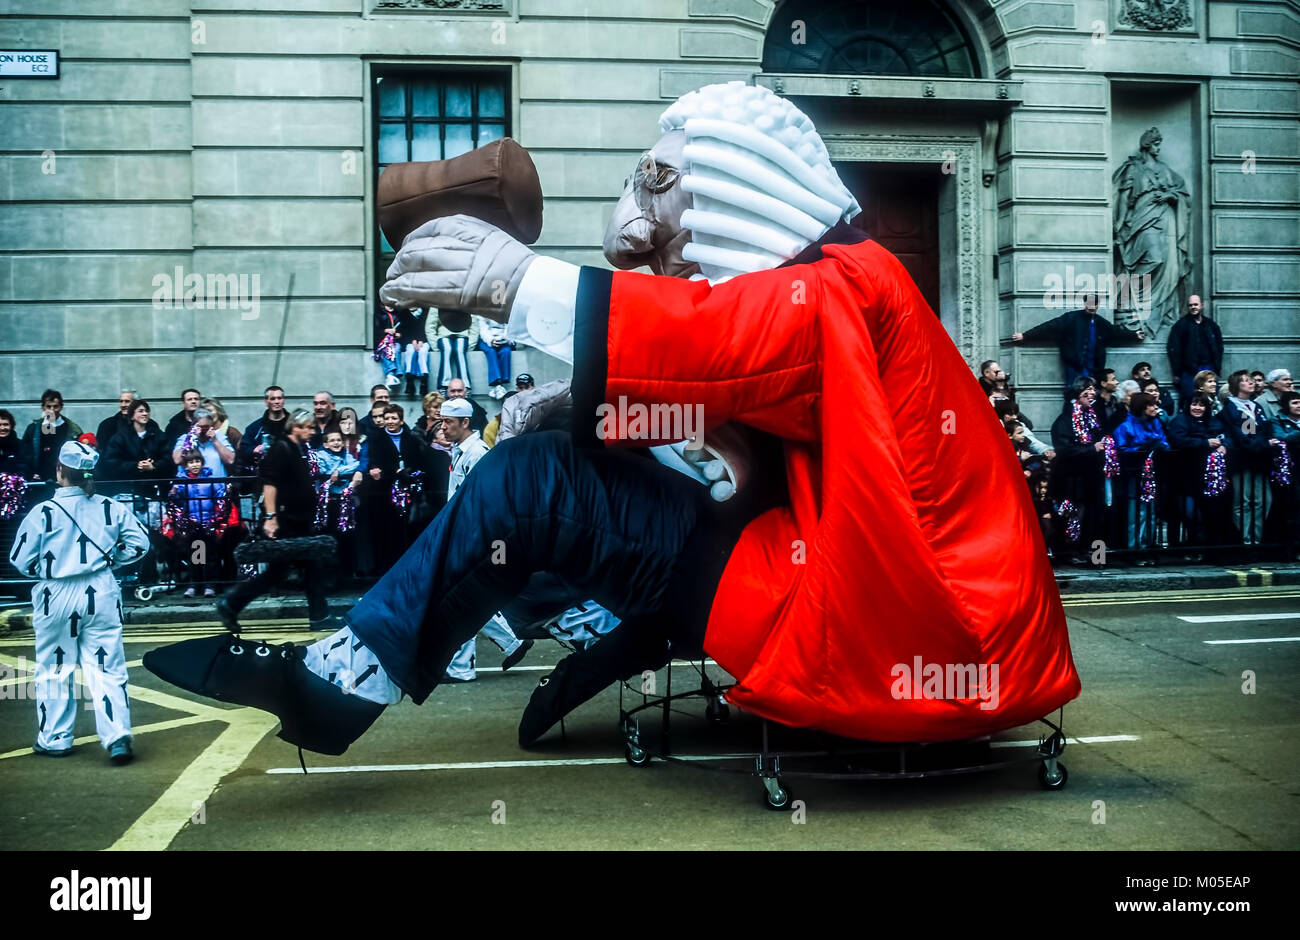 A section of the parade at the Annual Lord Mayor's Show. - Stock Image